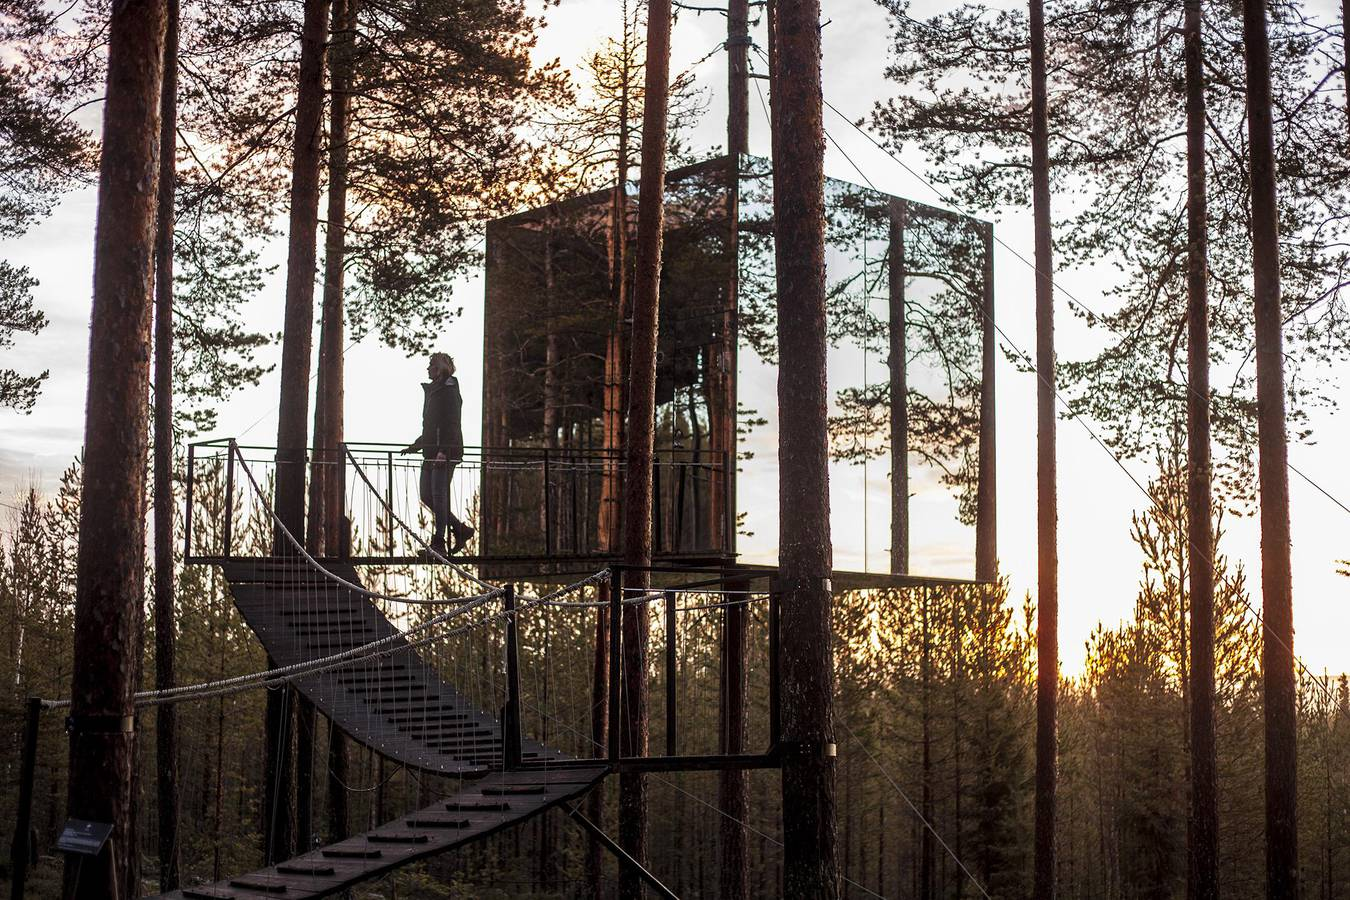 The Mirrorcube at the Treehotel in Harads, Swedish Lapland